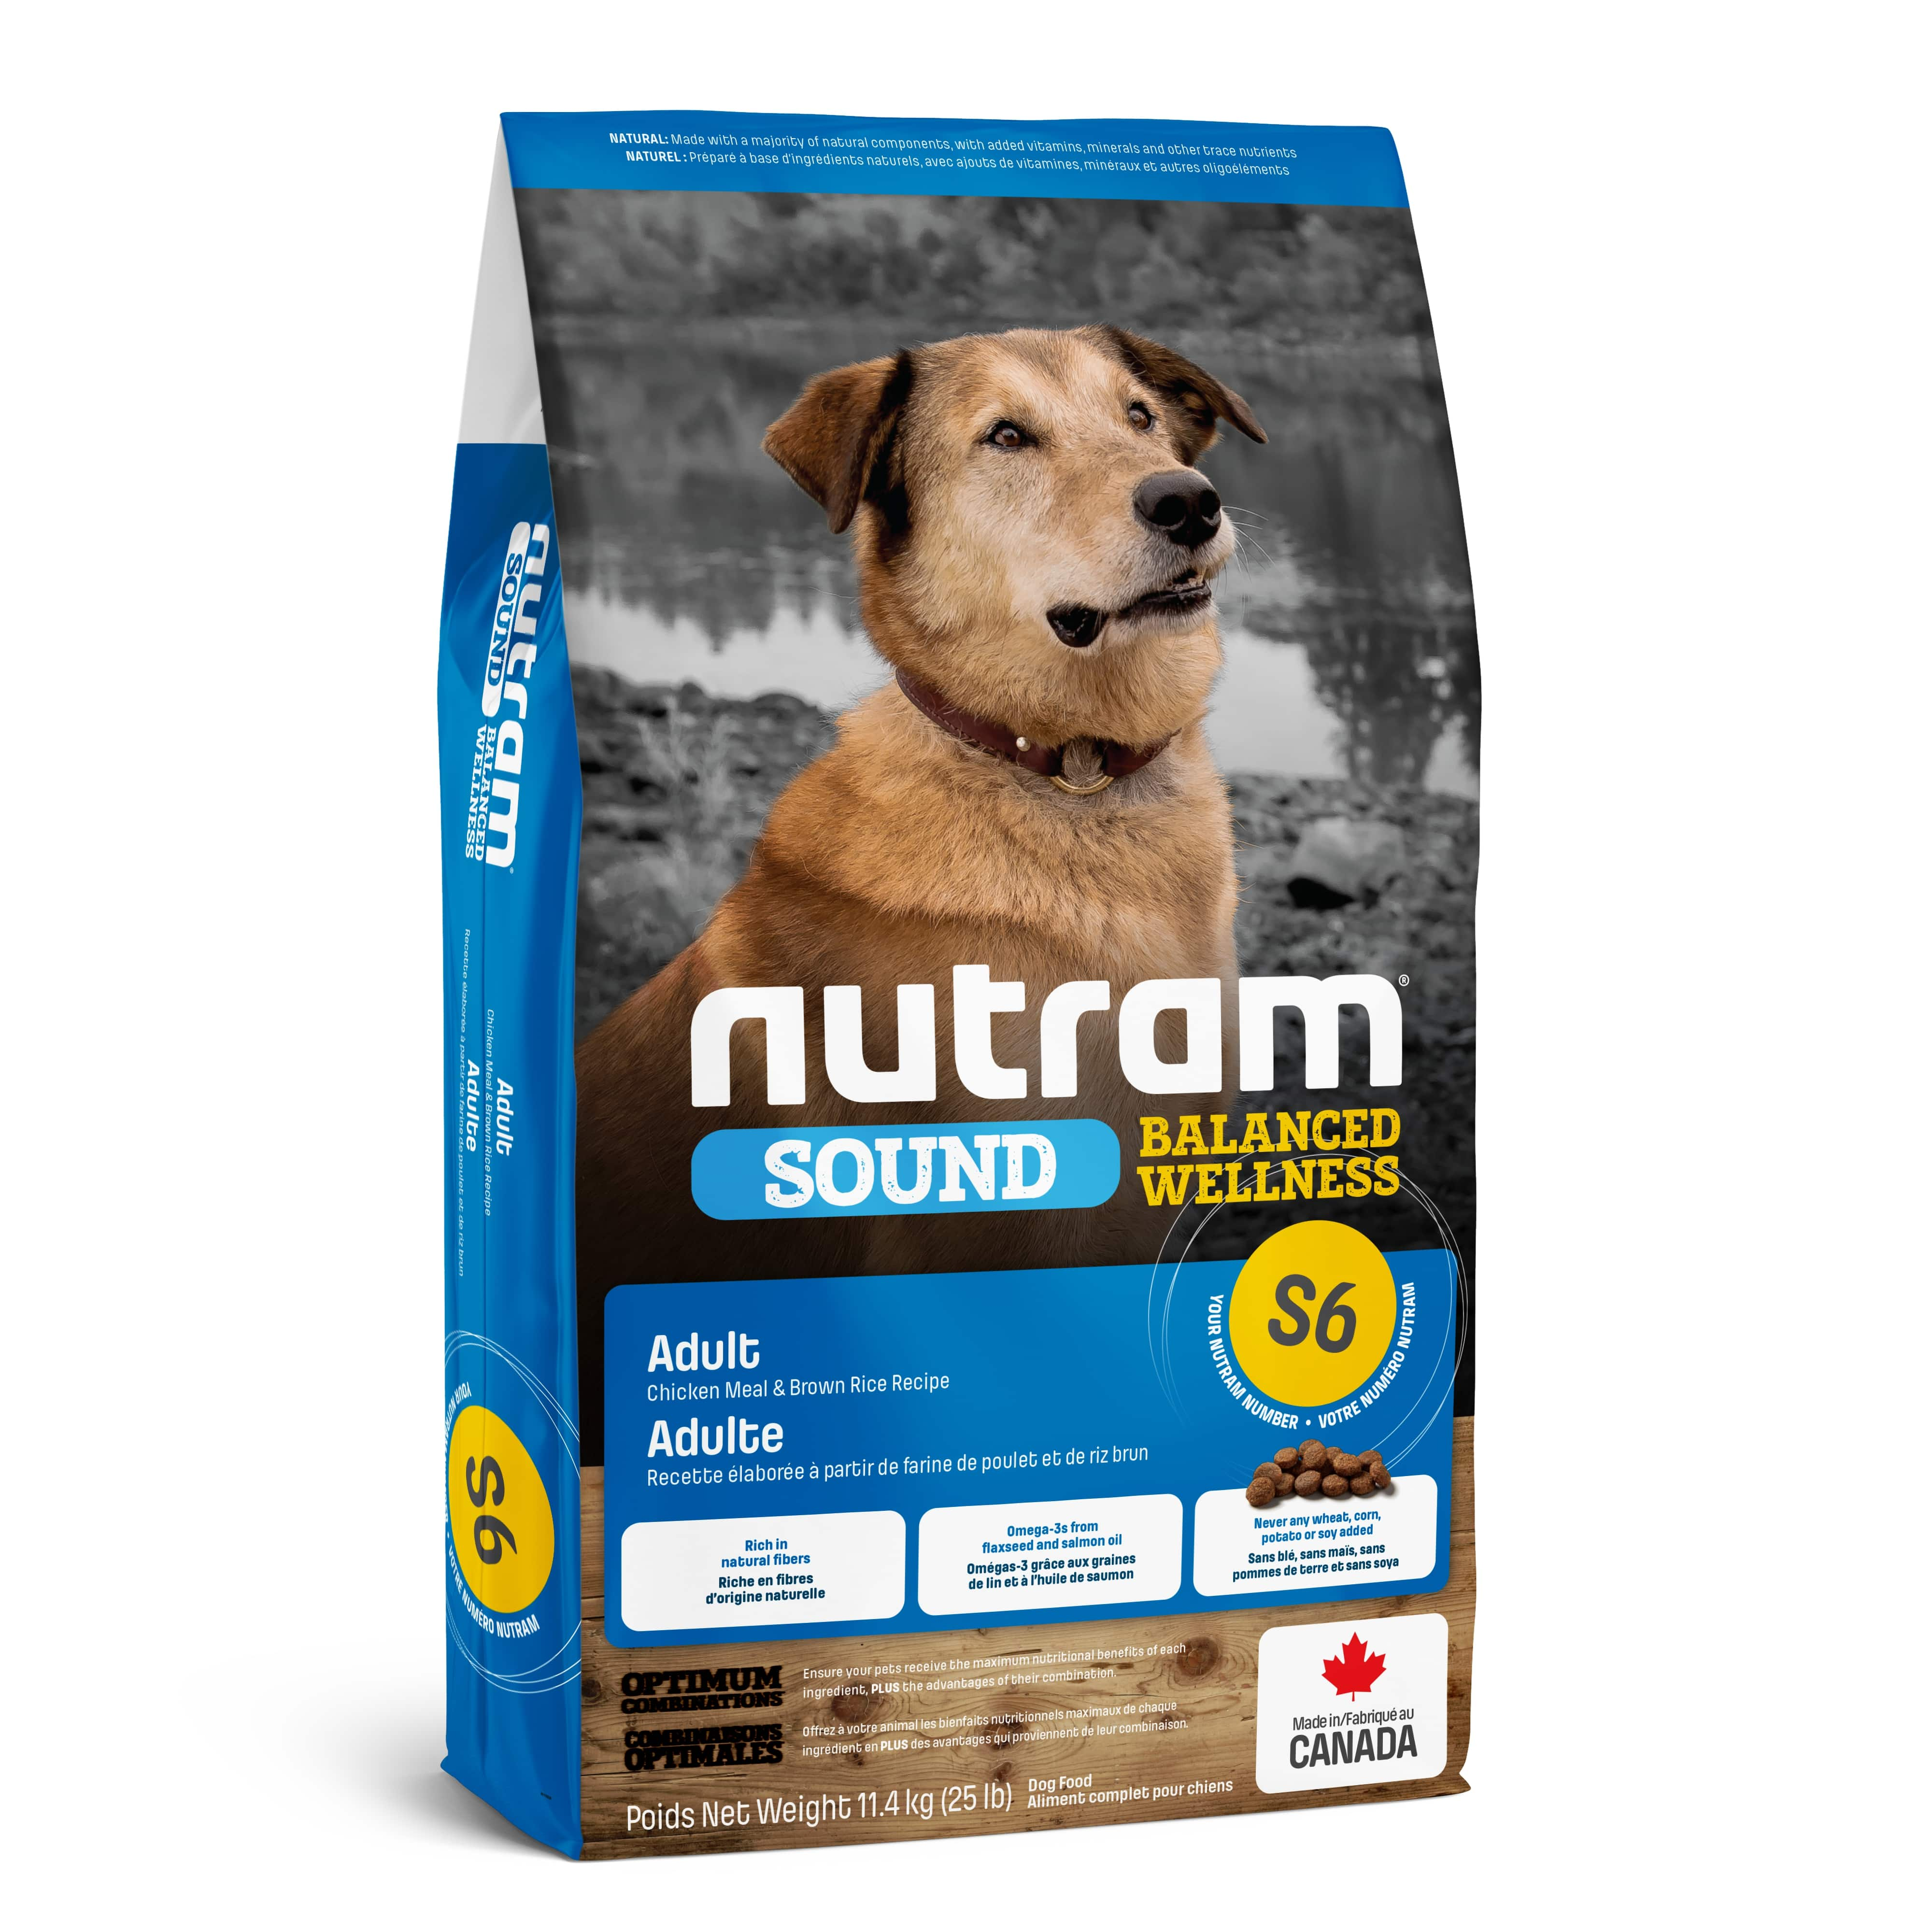 S6 Nutram Sound Balanced Wellness® Natural Adult Dog Food